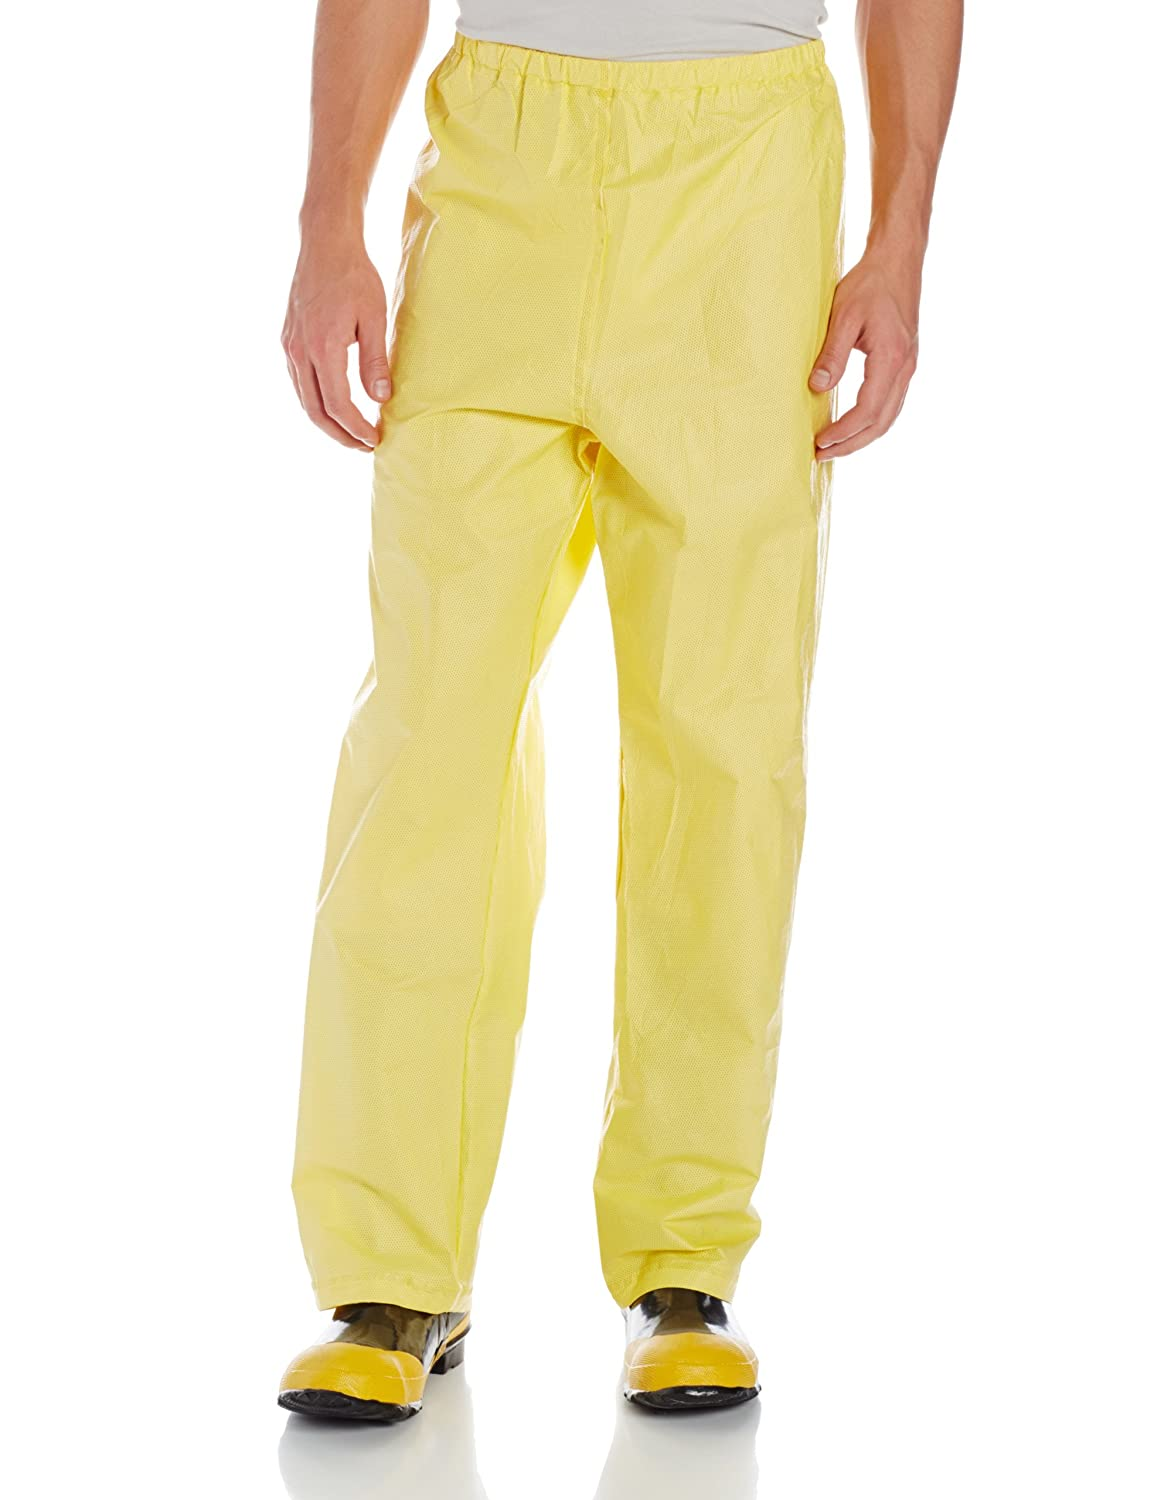 O2 Rainwear Original Rain Pants